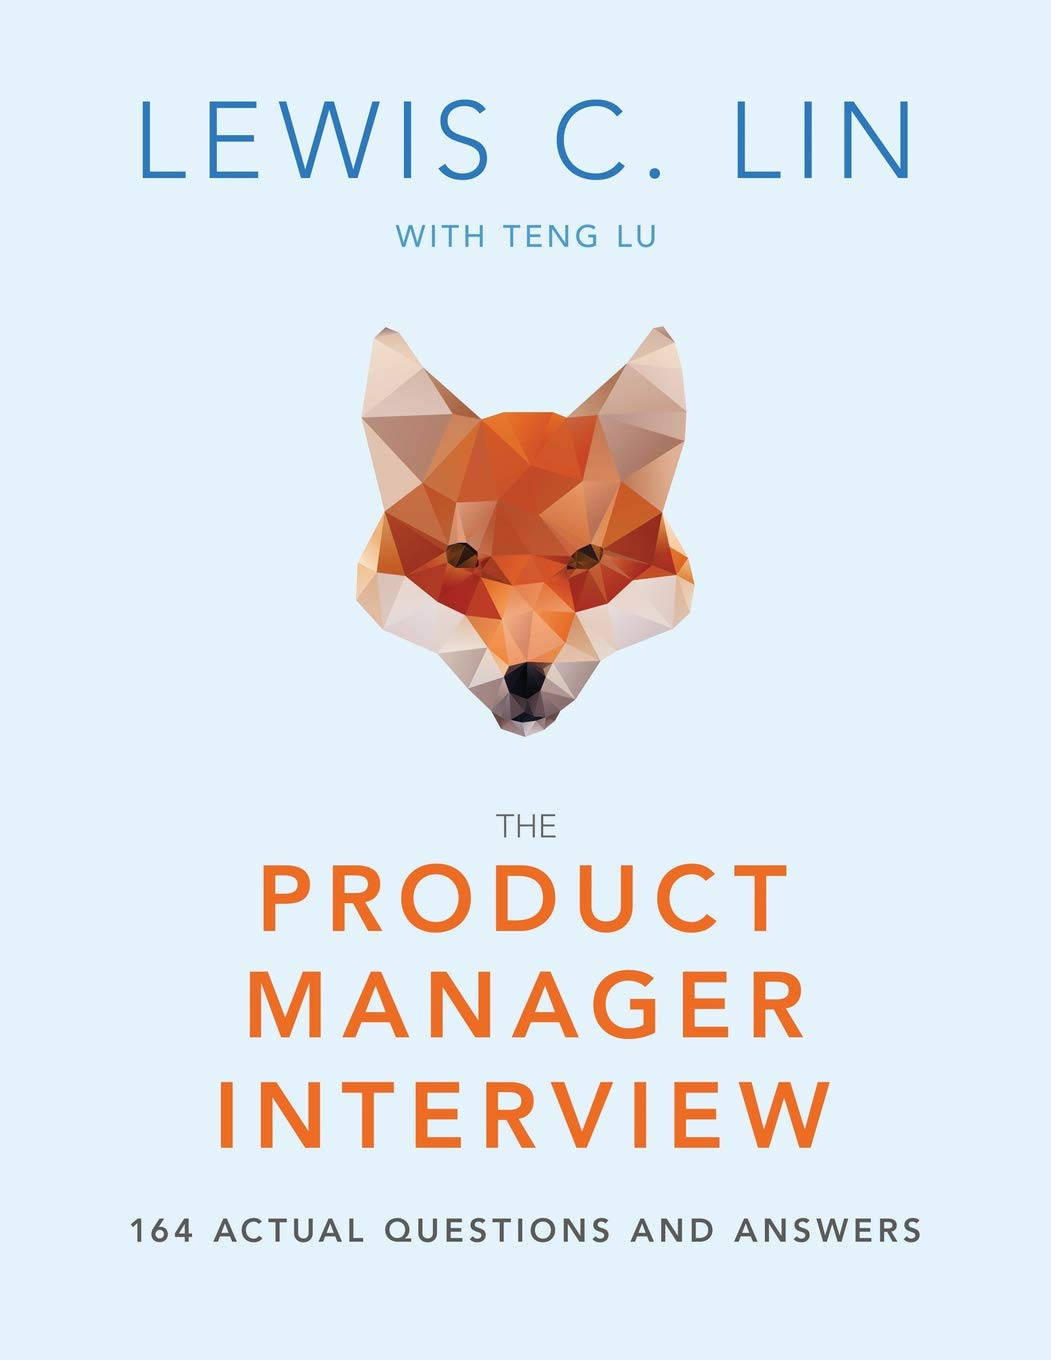 Image OfThe Product Manager Interview: 164 Actual Questions And Answers